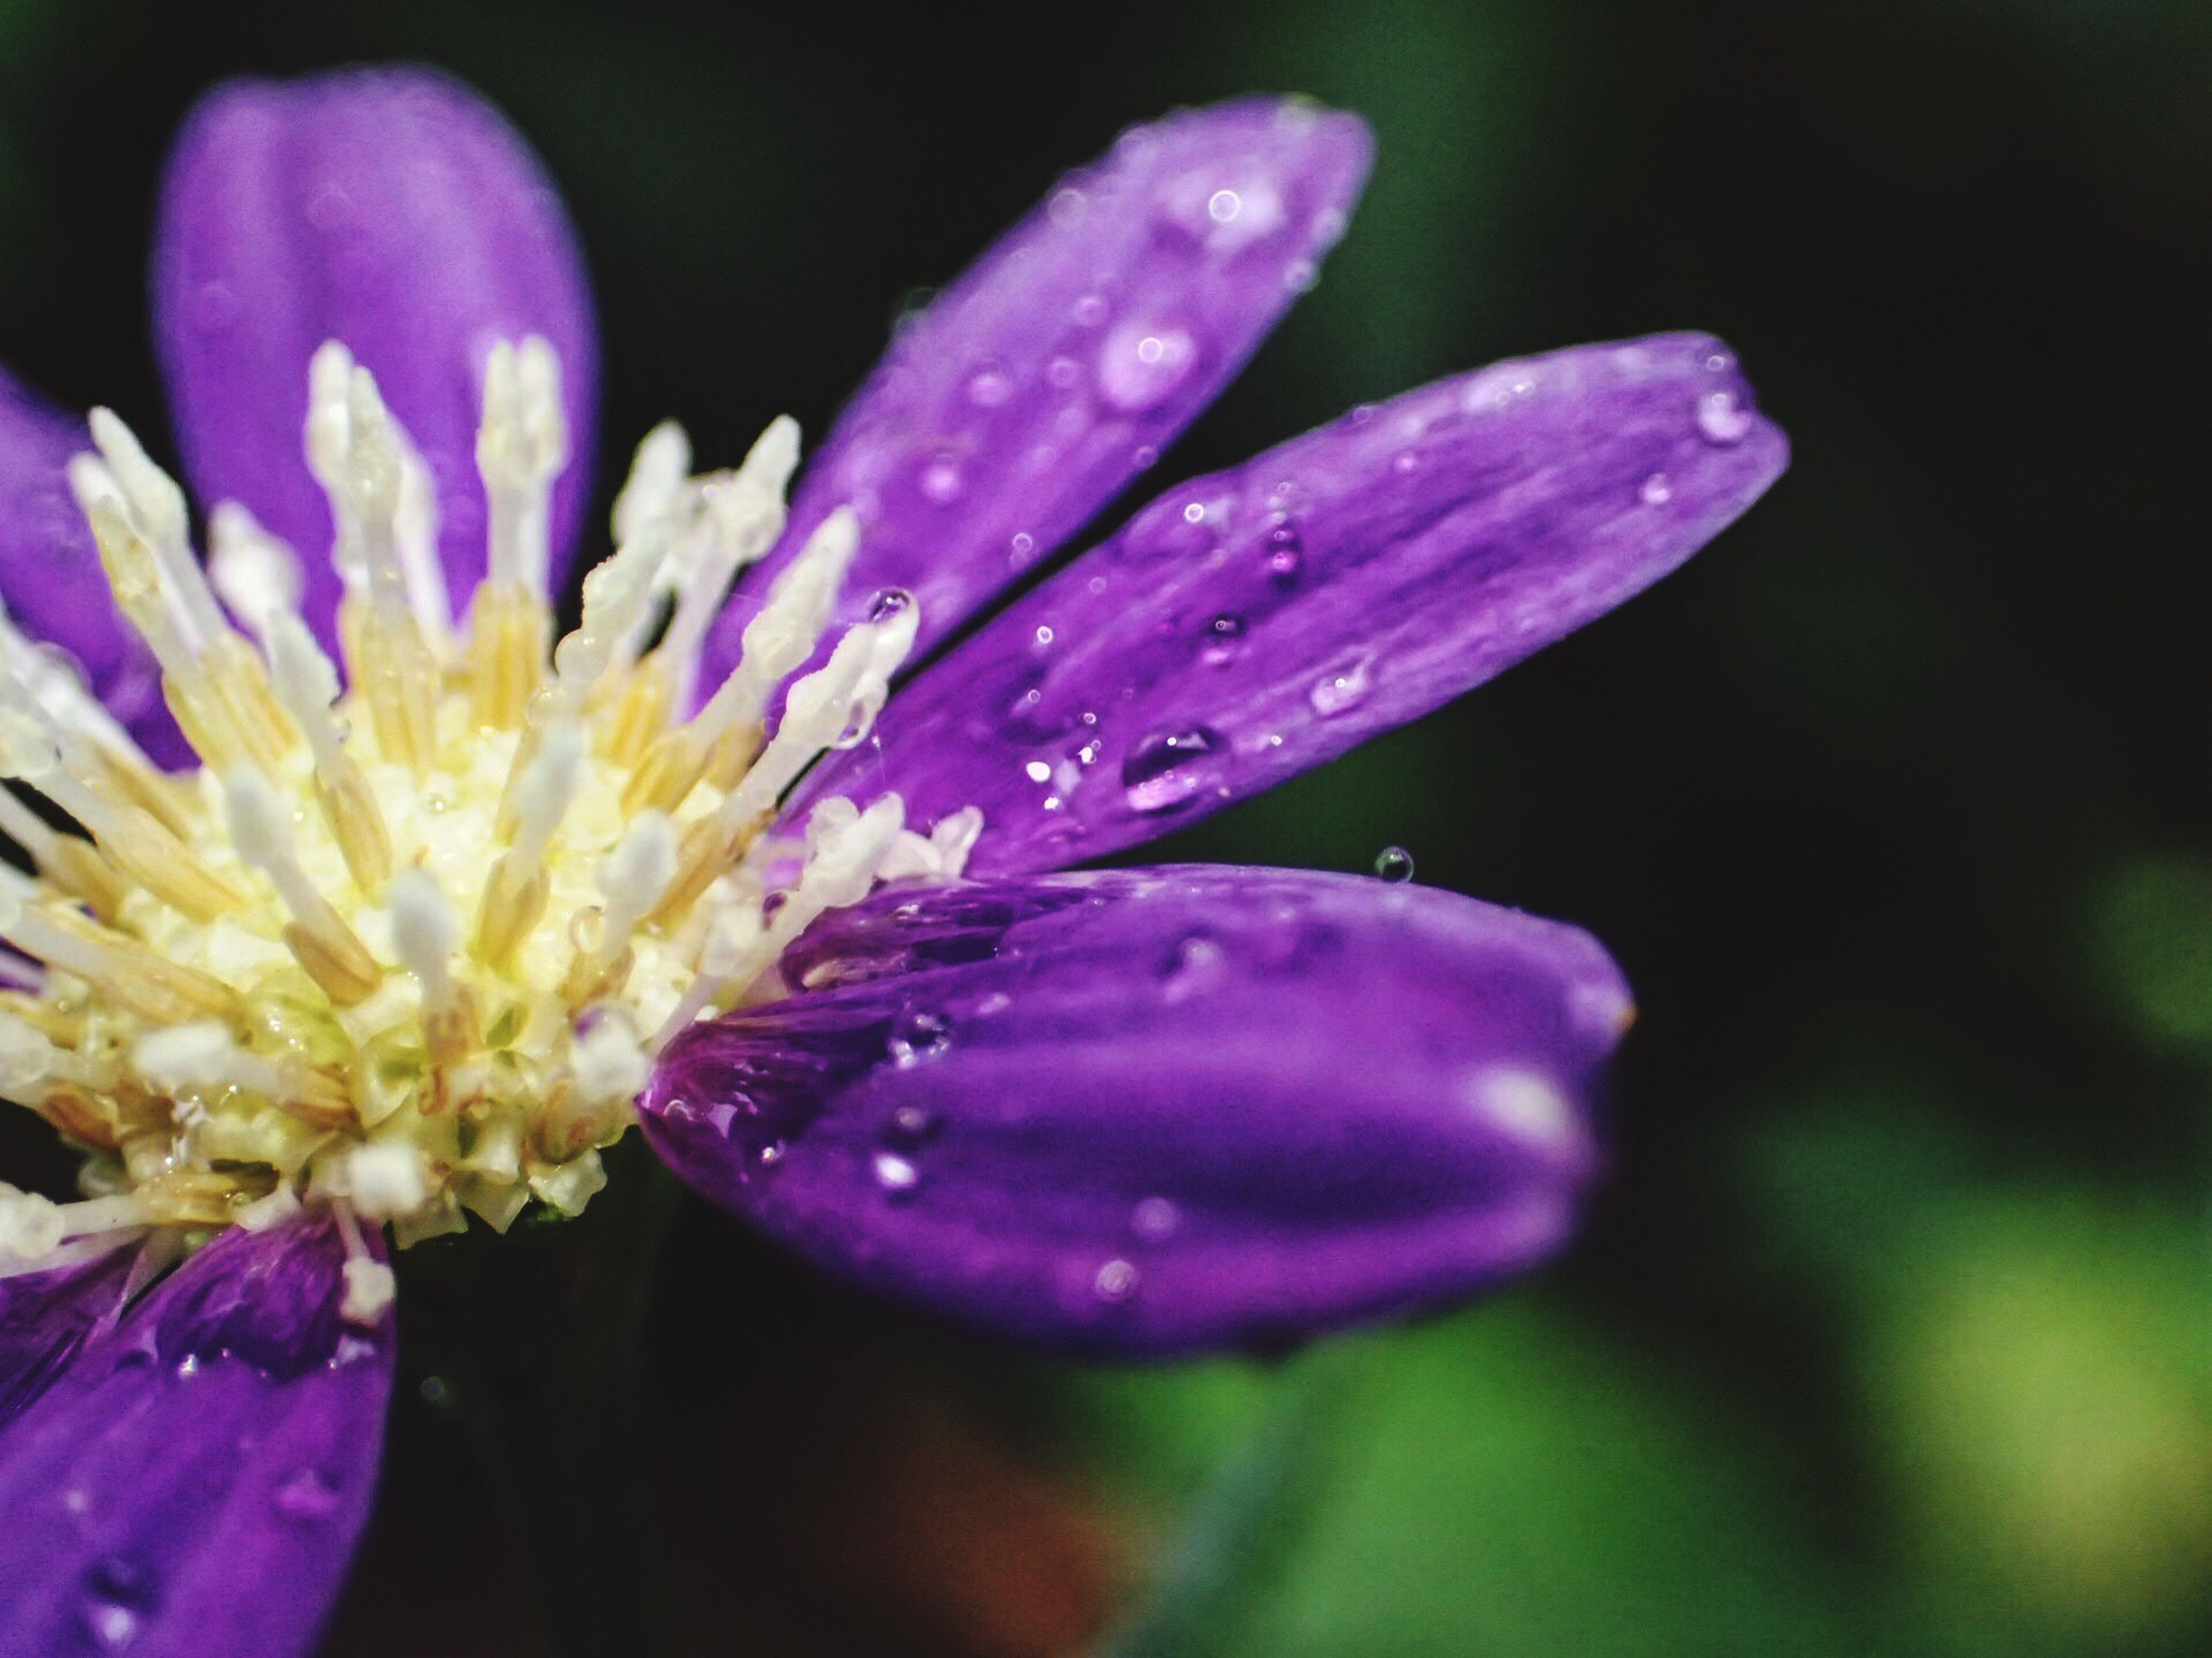 flower, petal, freshness, fragility, beauty in nature, nature, growth, flower head, purple, plant, close-up, selective focus, no people, outdoors, springtime, water, day, yellow, stamen, blooming